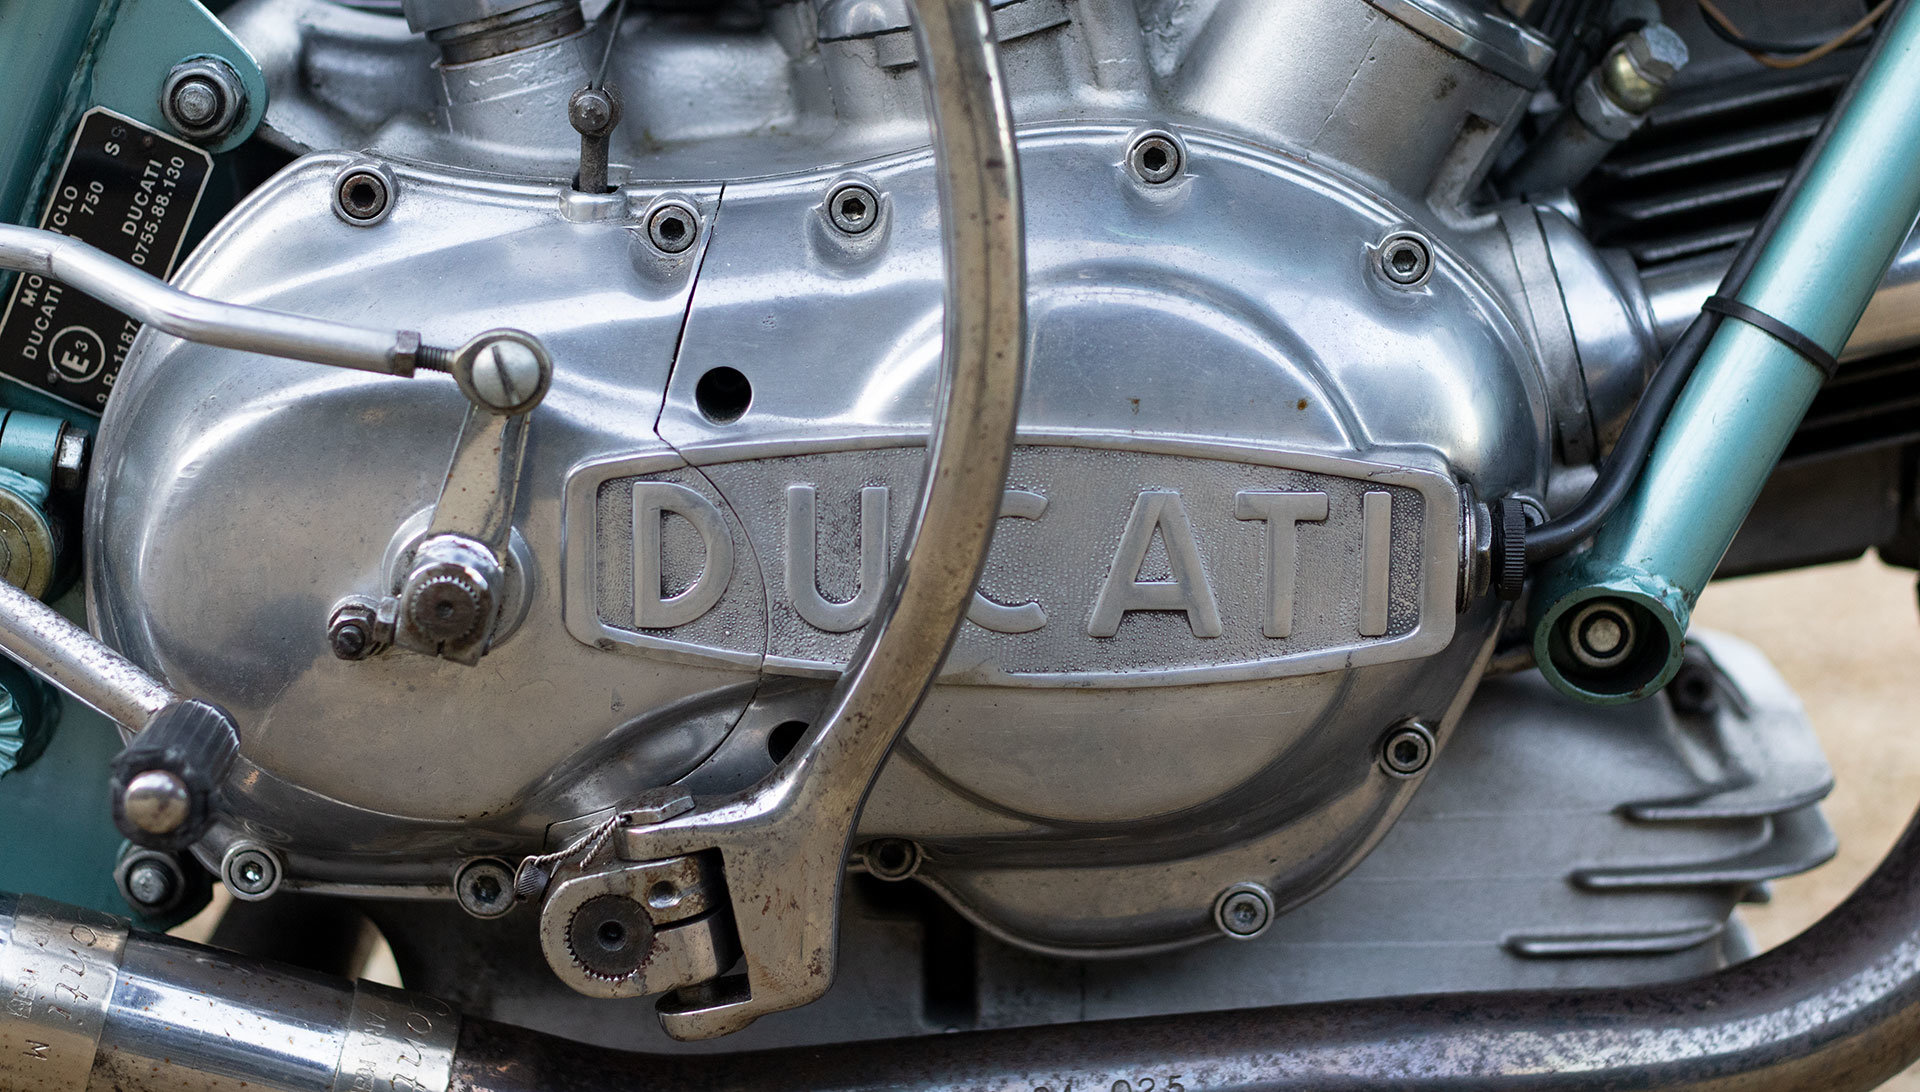 1974 Ducati 750 SS 'Green Frame' - Genuine with Falloon Report For Sale (picture 8 of 17)